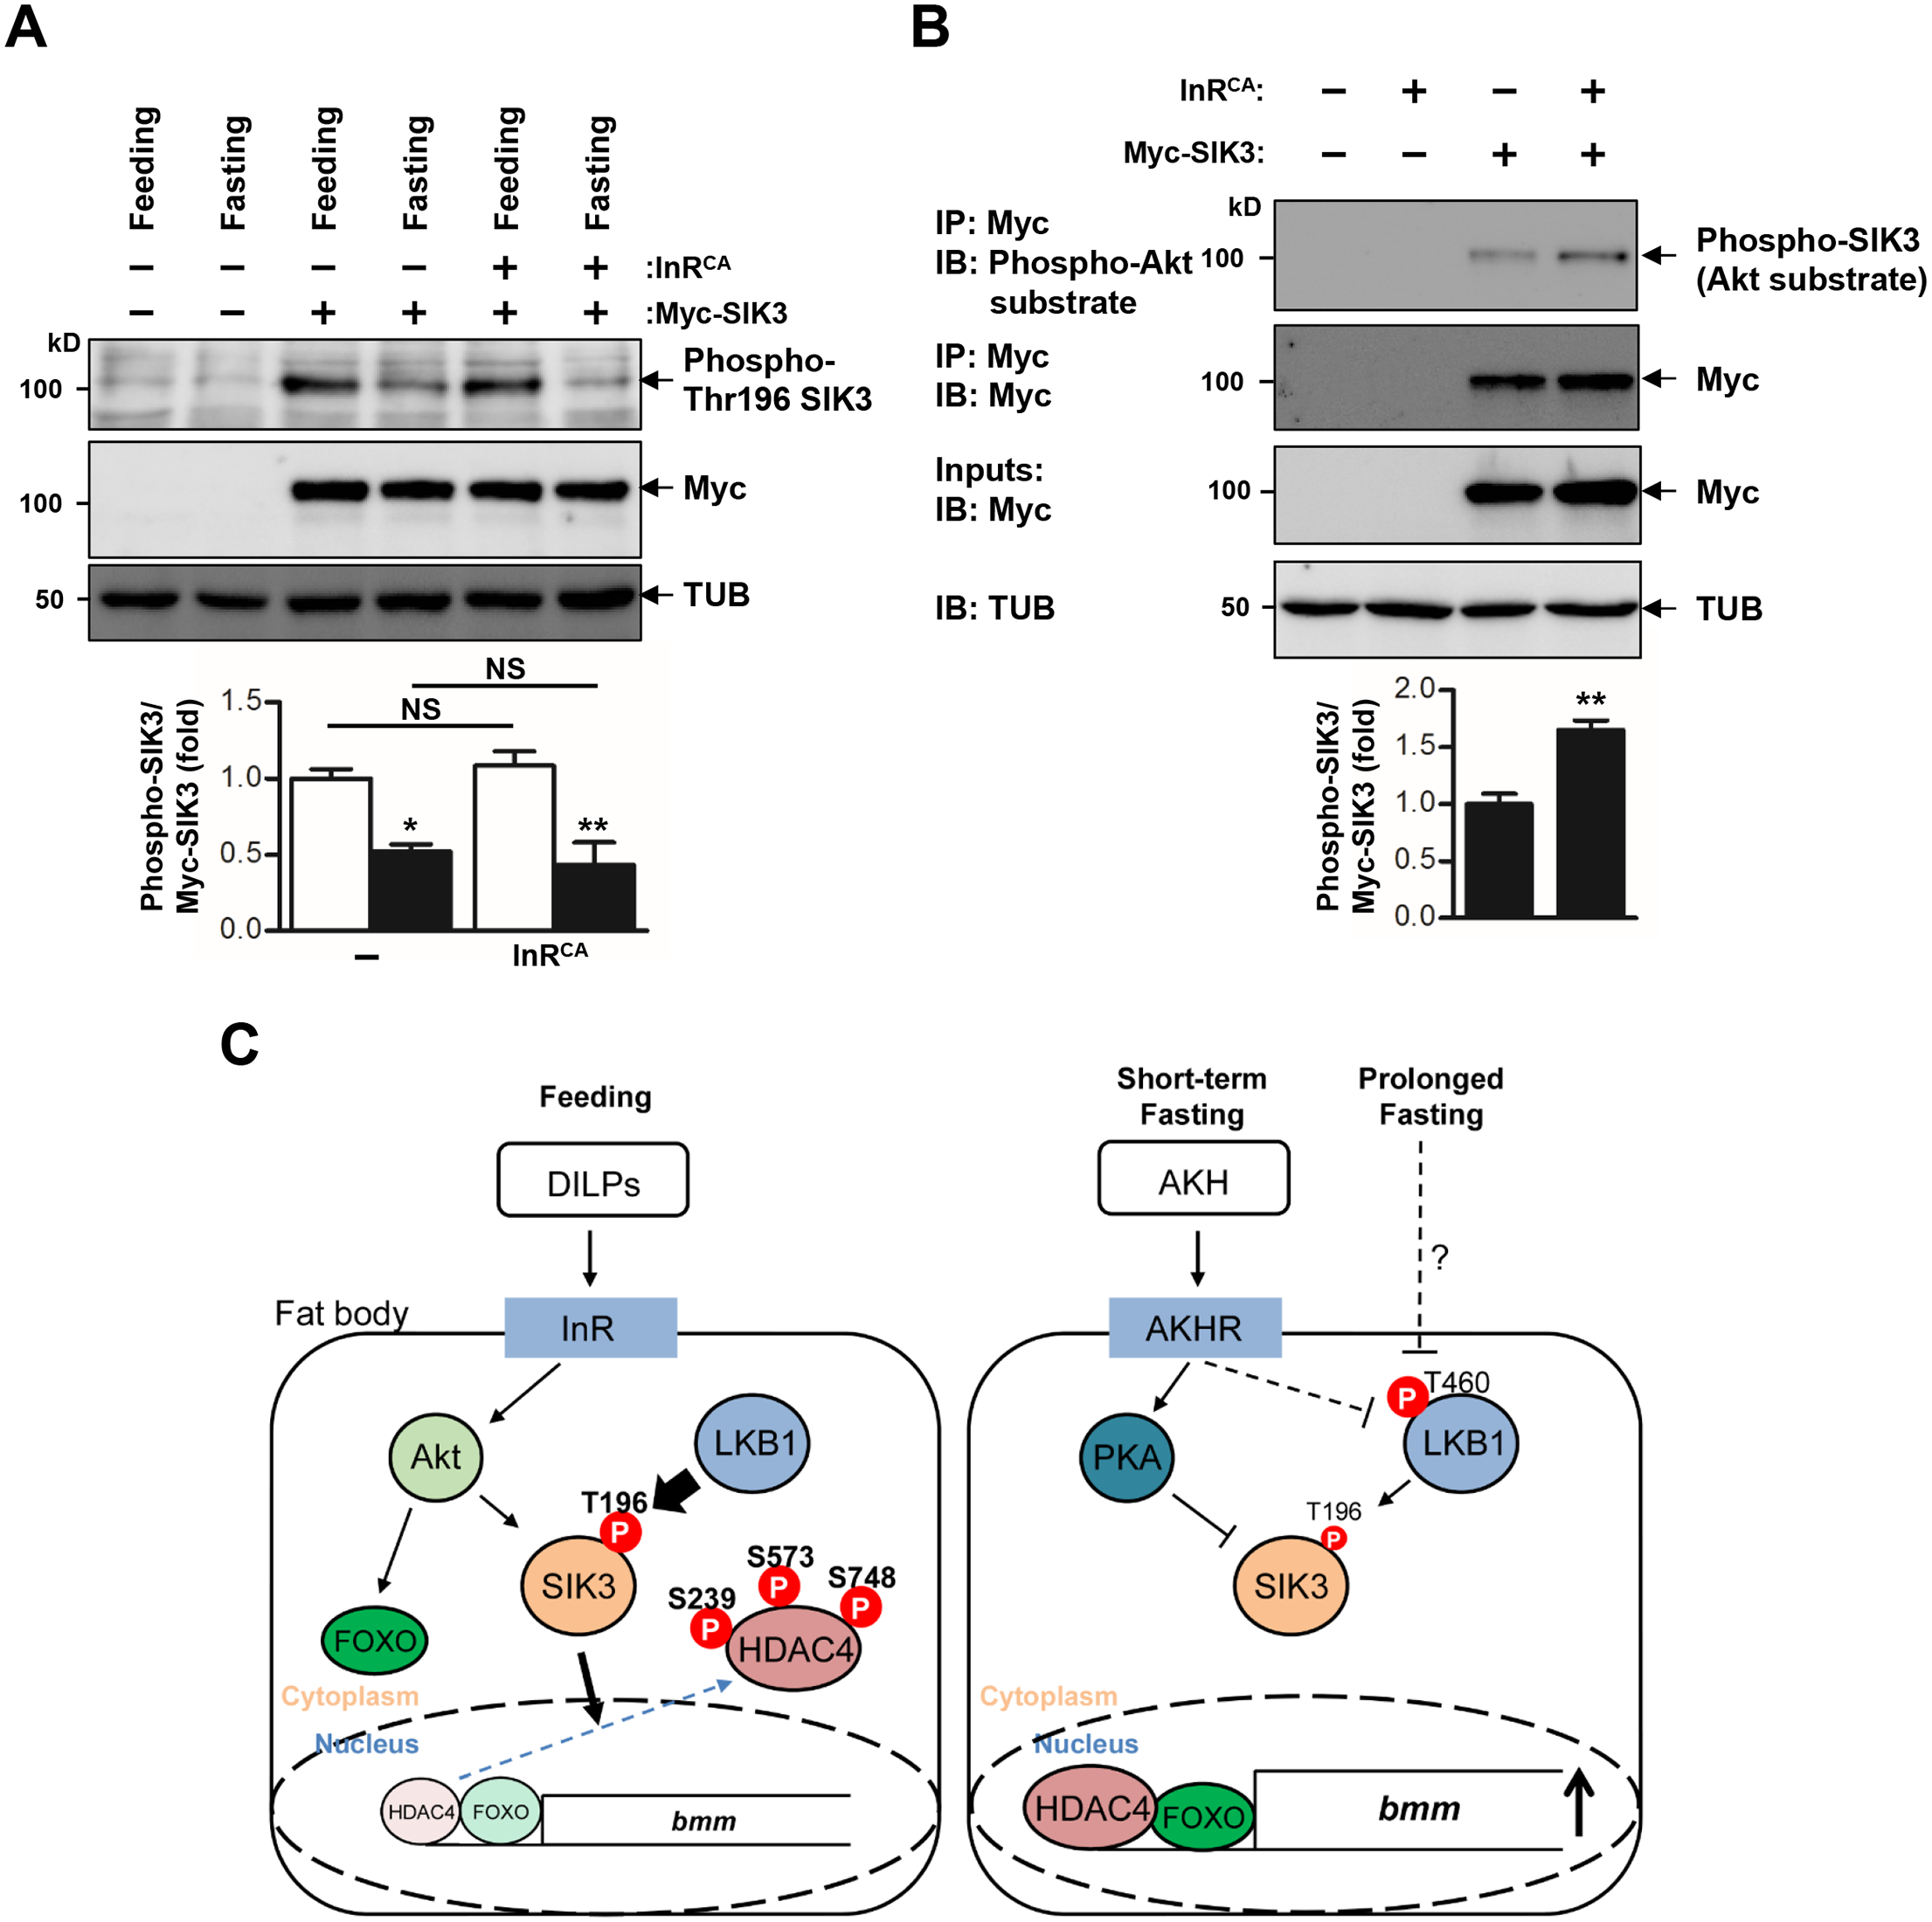 Activation of insulin receptor increases phosphorylation of SIK3 by Akt.